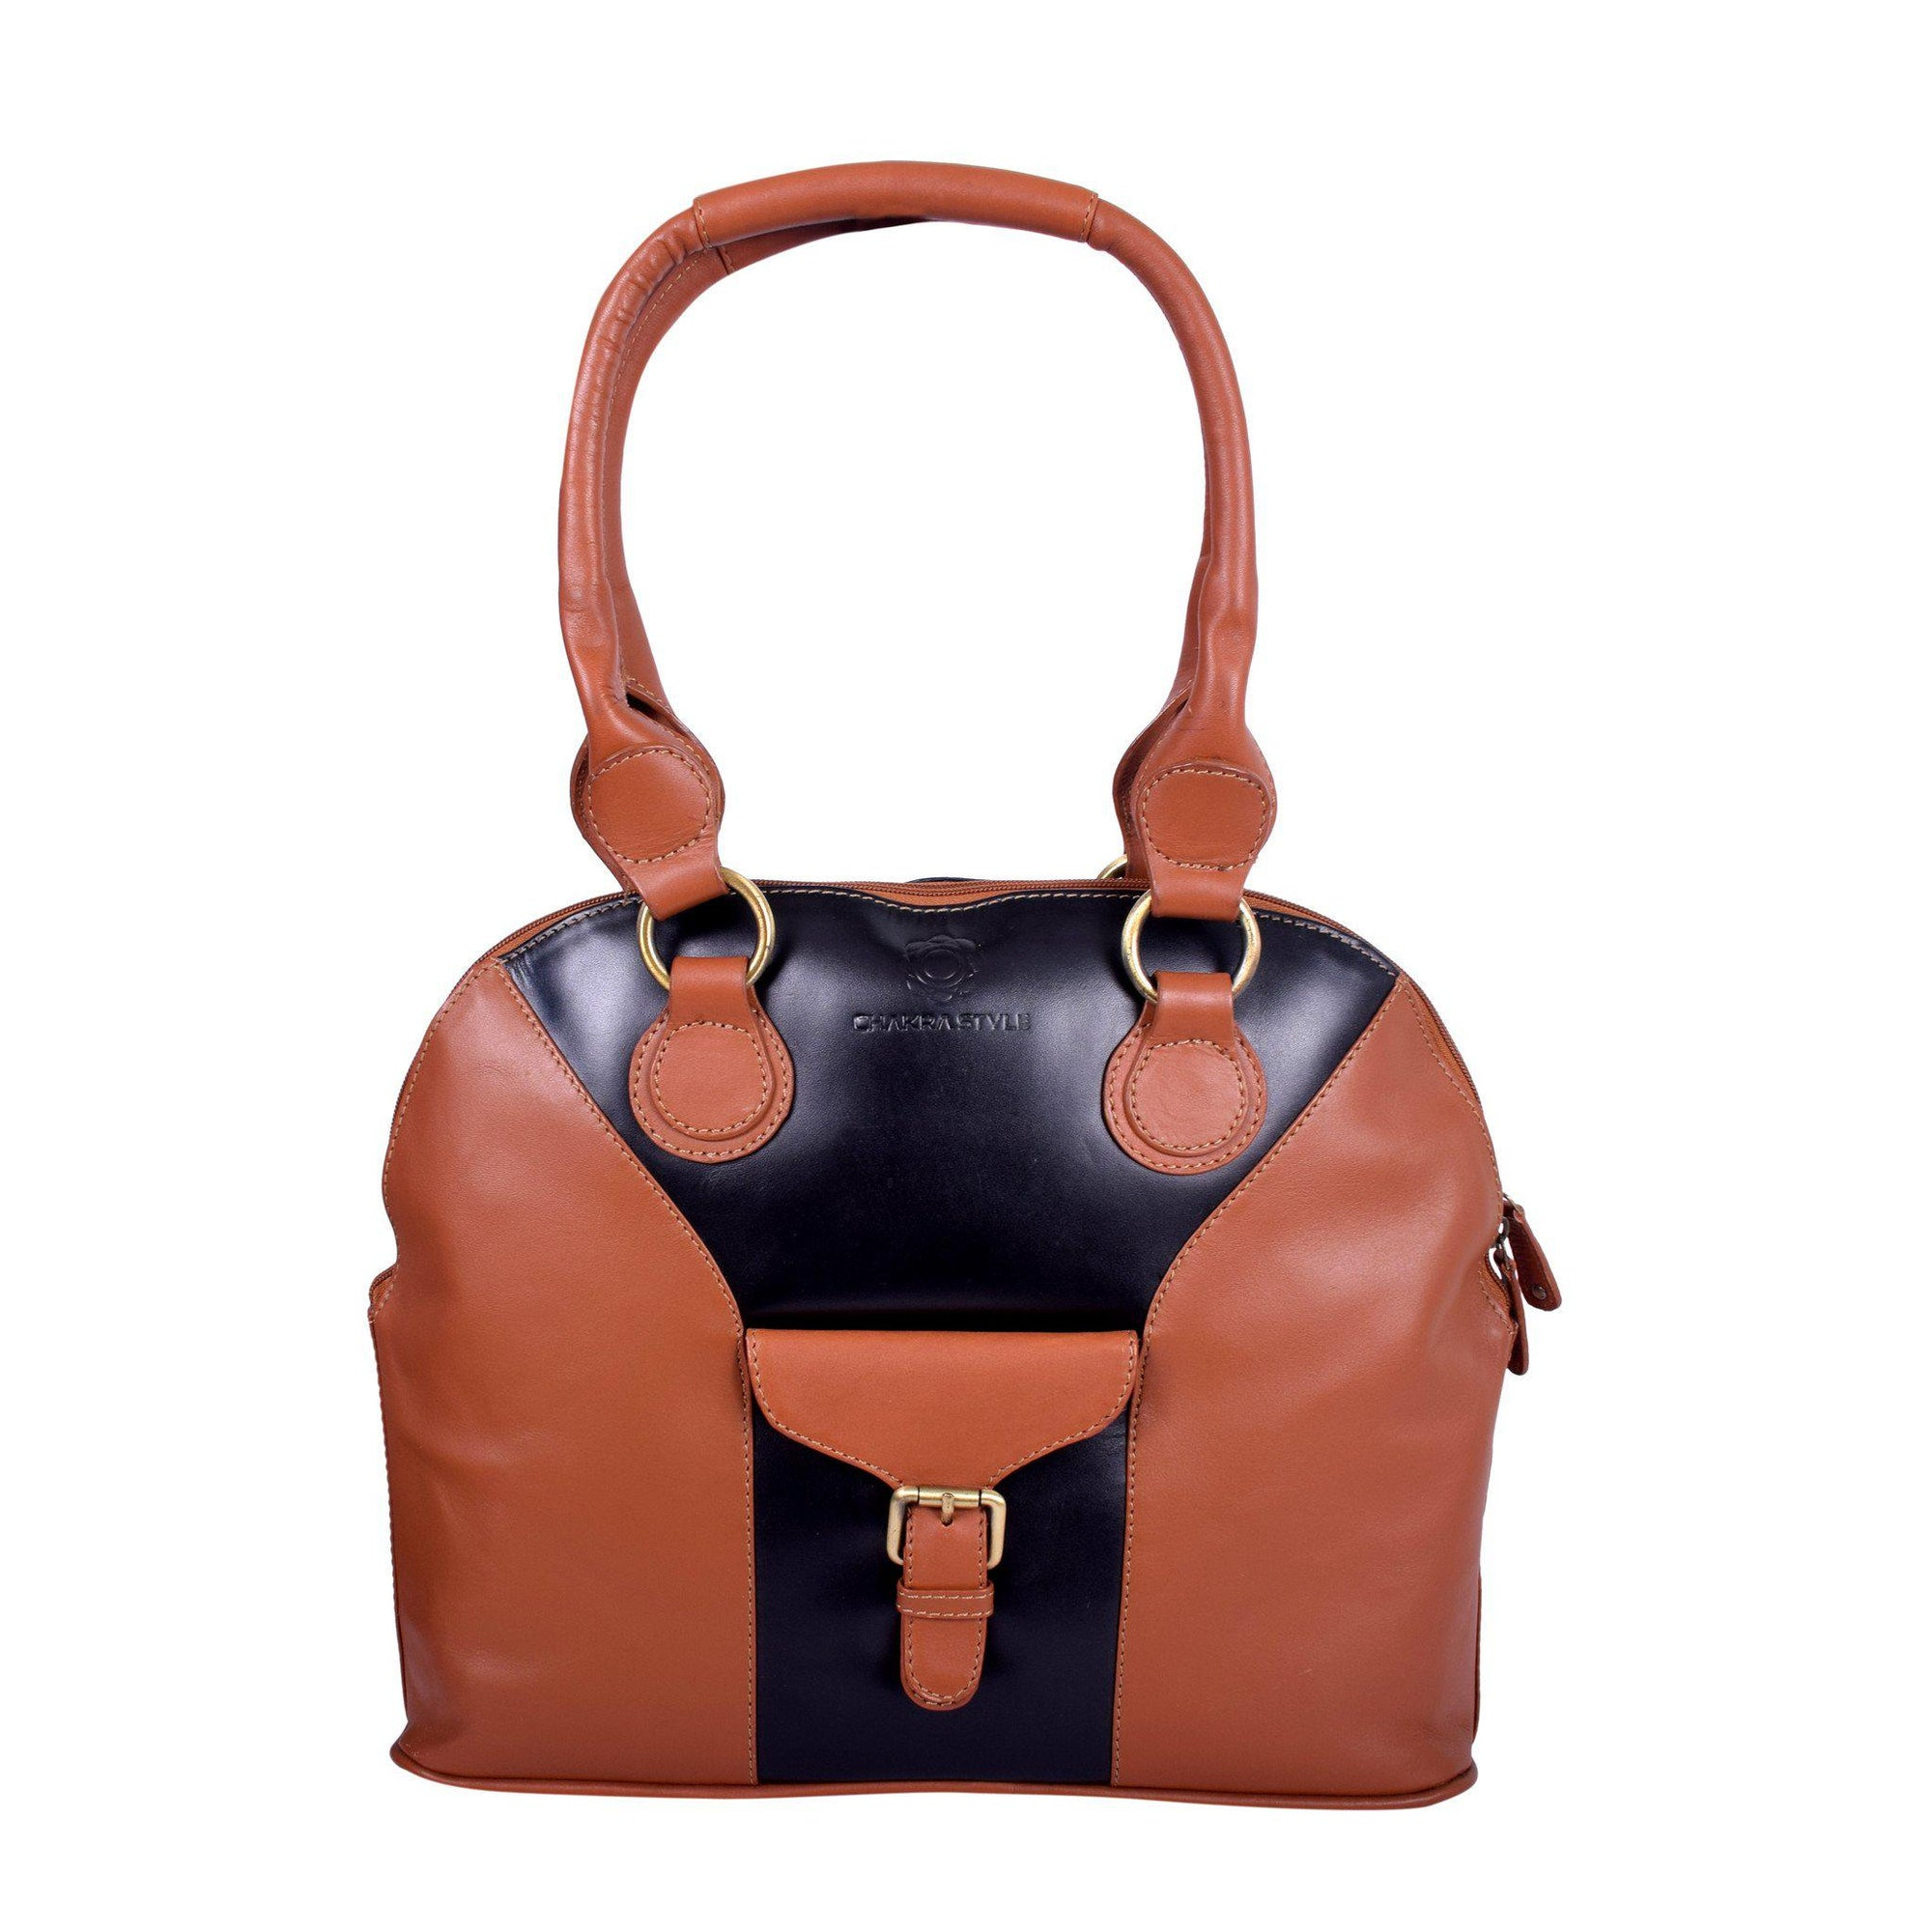 Royal Trendy Stylish Contrast Leather Bag.